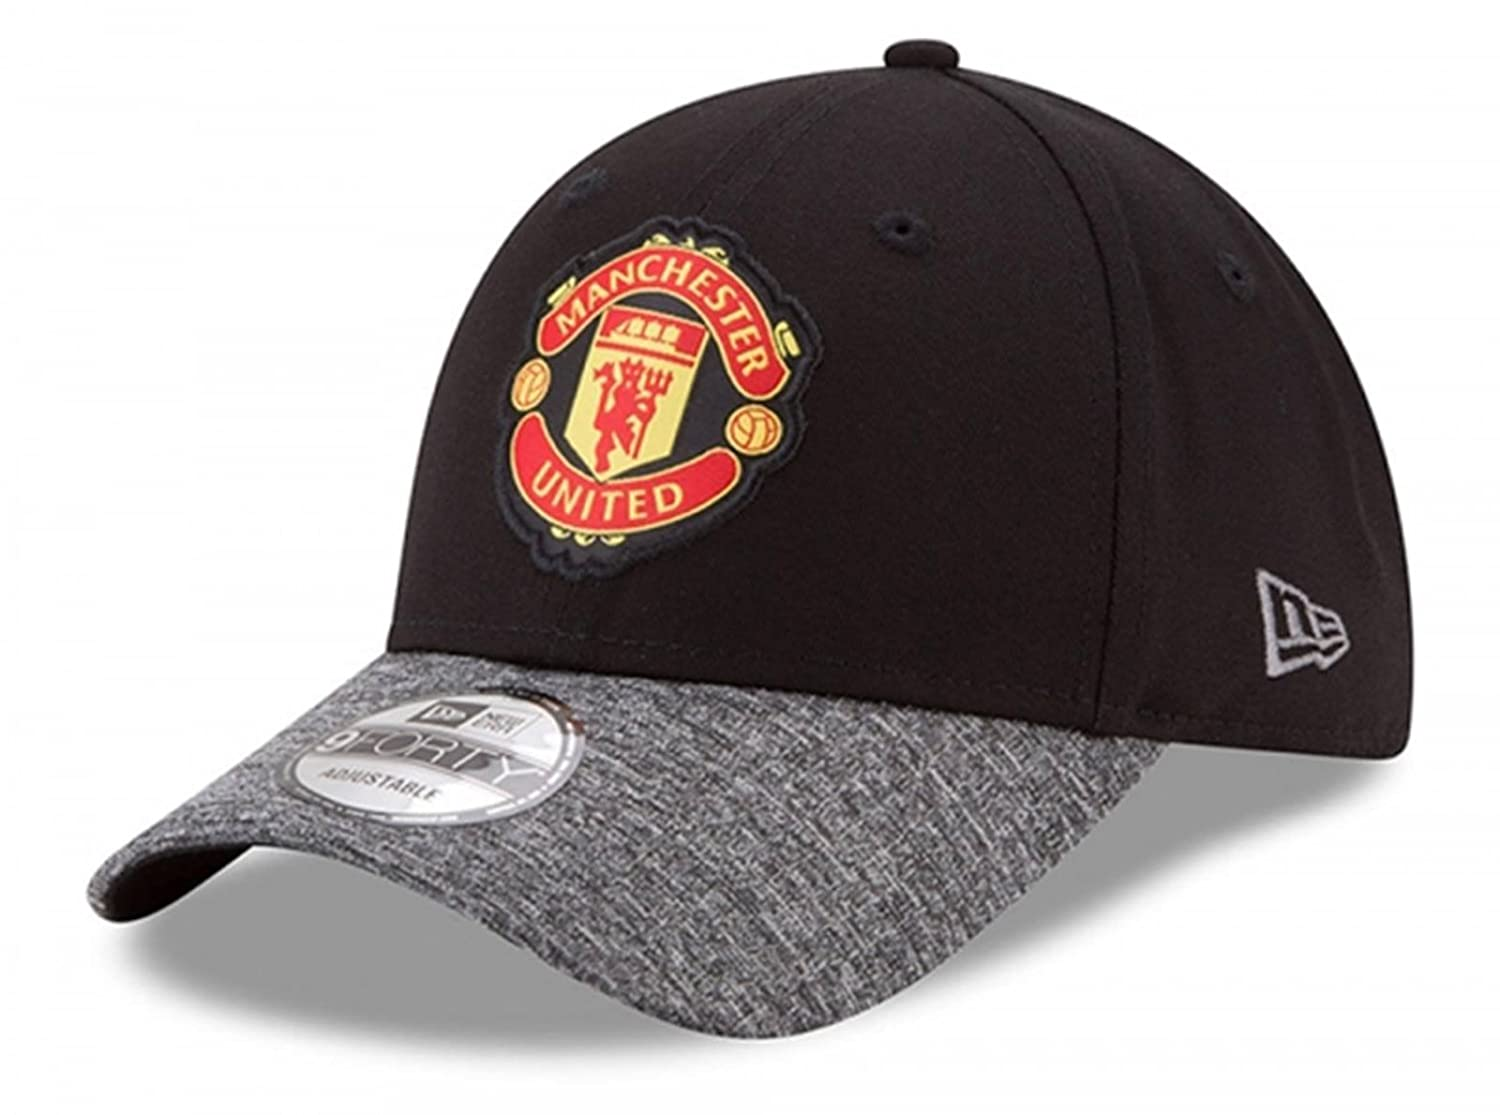 a1067c9c5 New Era 9Forty Officially Licensed Manchester United FC Soccer League Club  Black/Grey Adjustable Hat